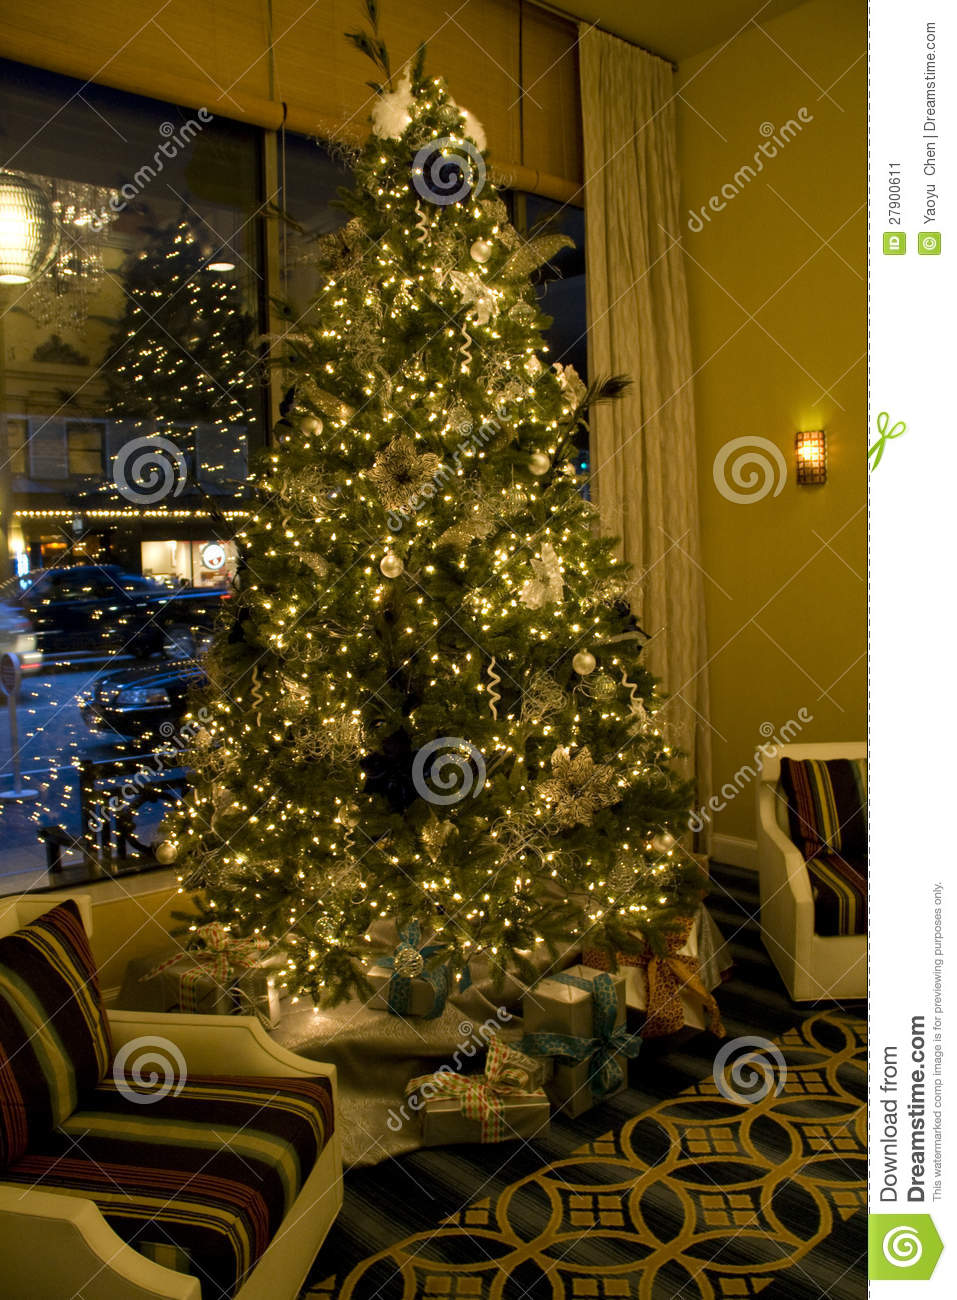 Christmas Tree In Living Room Stock Image Image 27900611